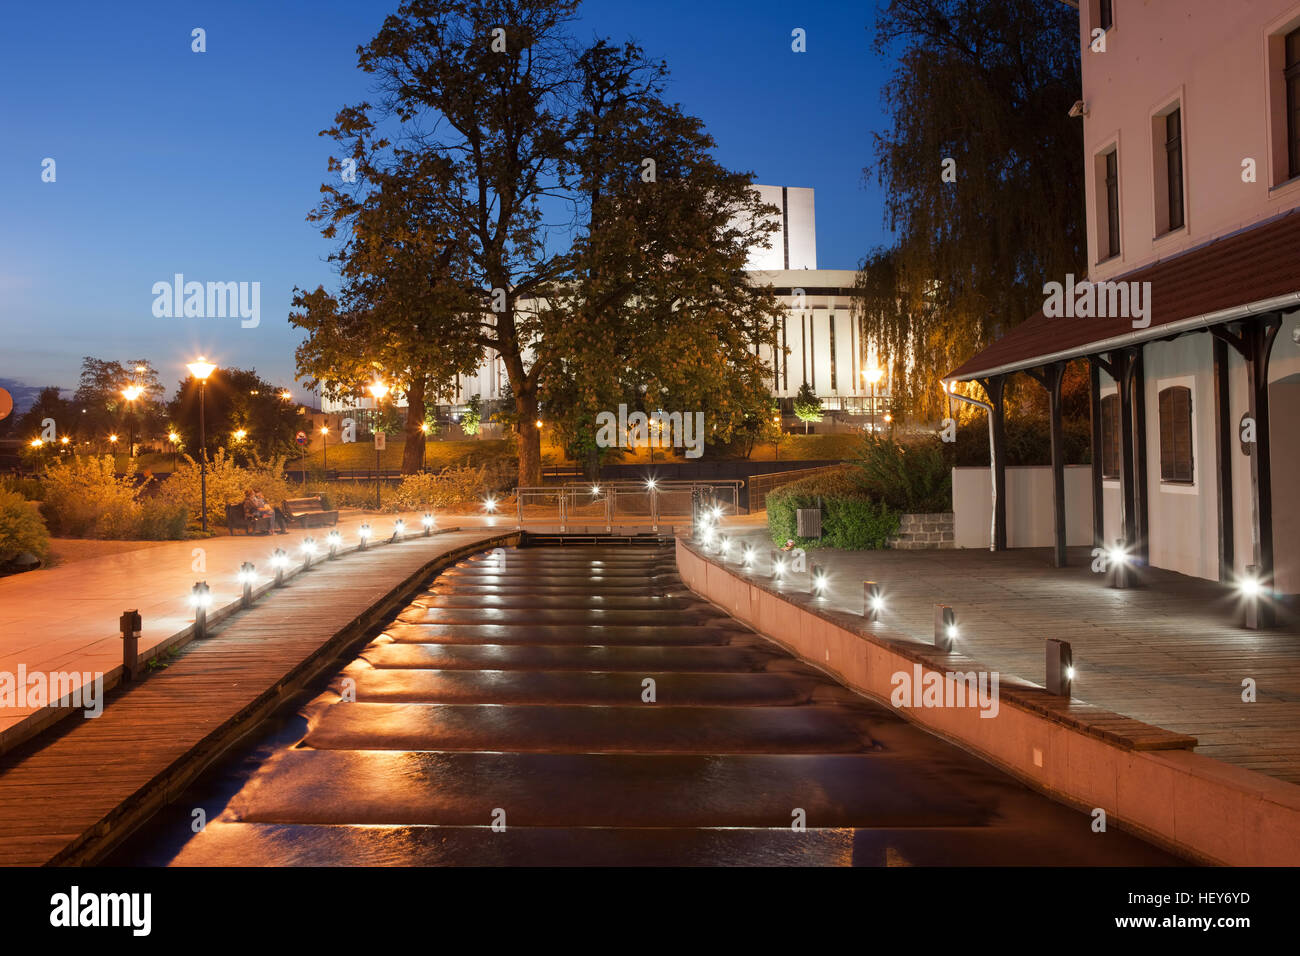 Water cascades on canal at night at Mill Island in Bydgoszcz, Poland, Europe - Stock Image